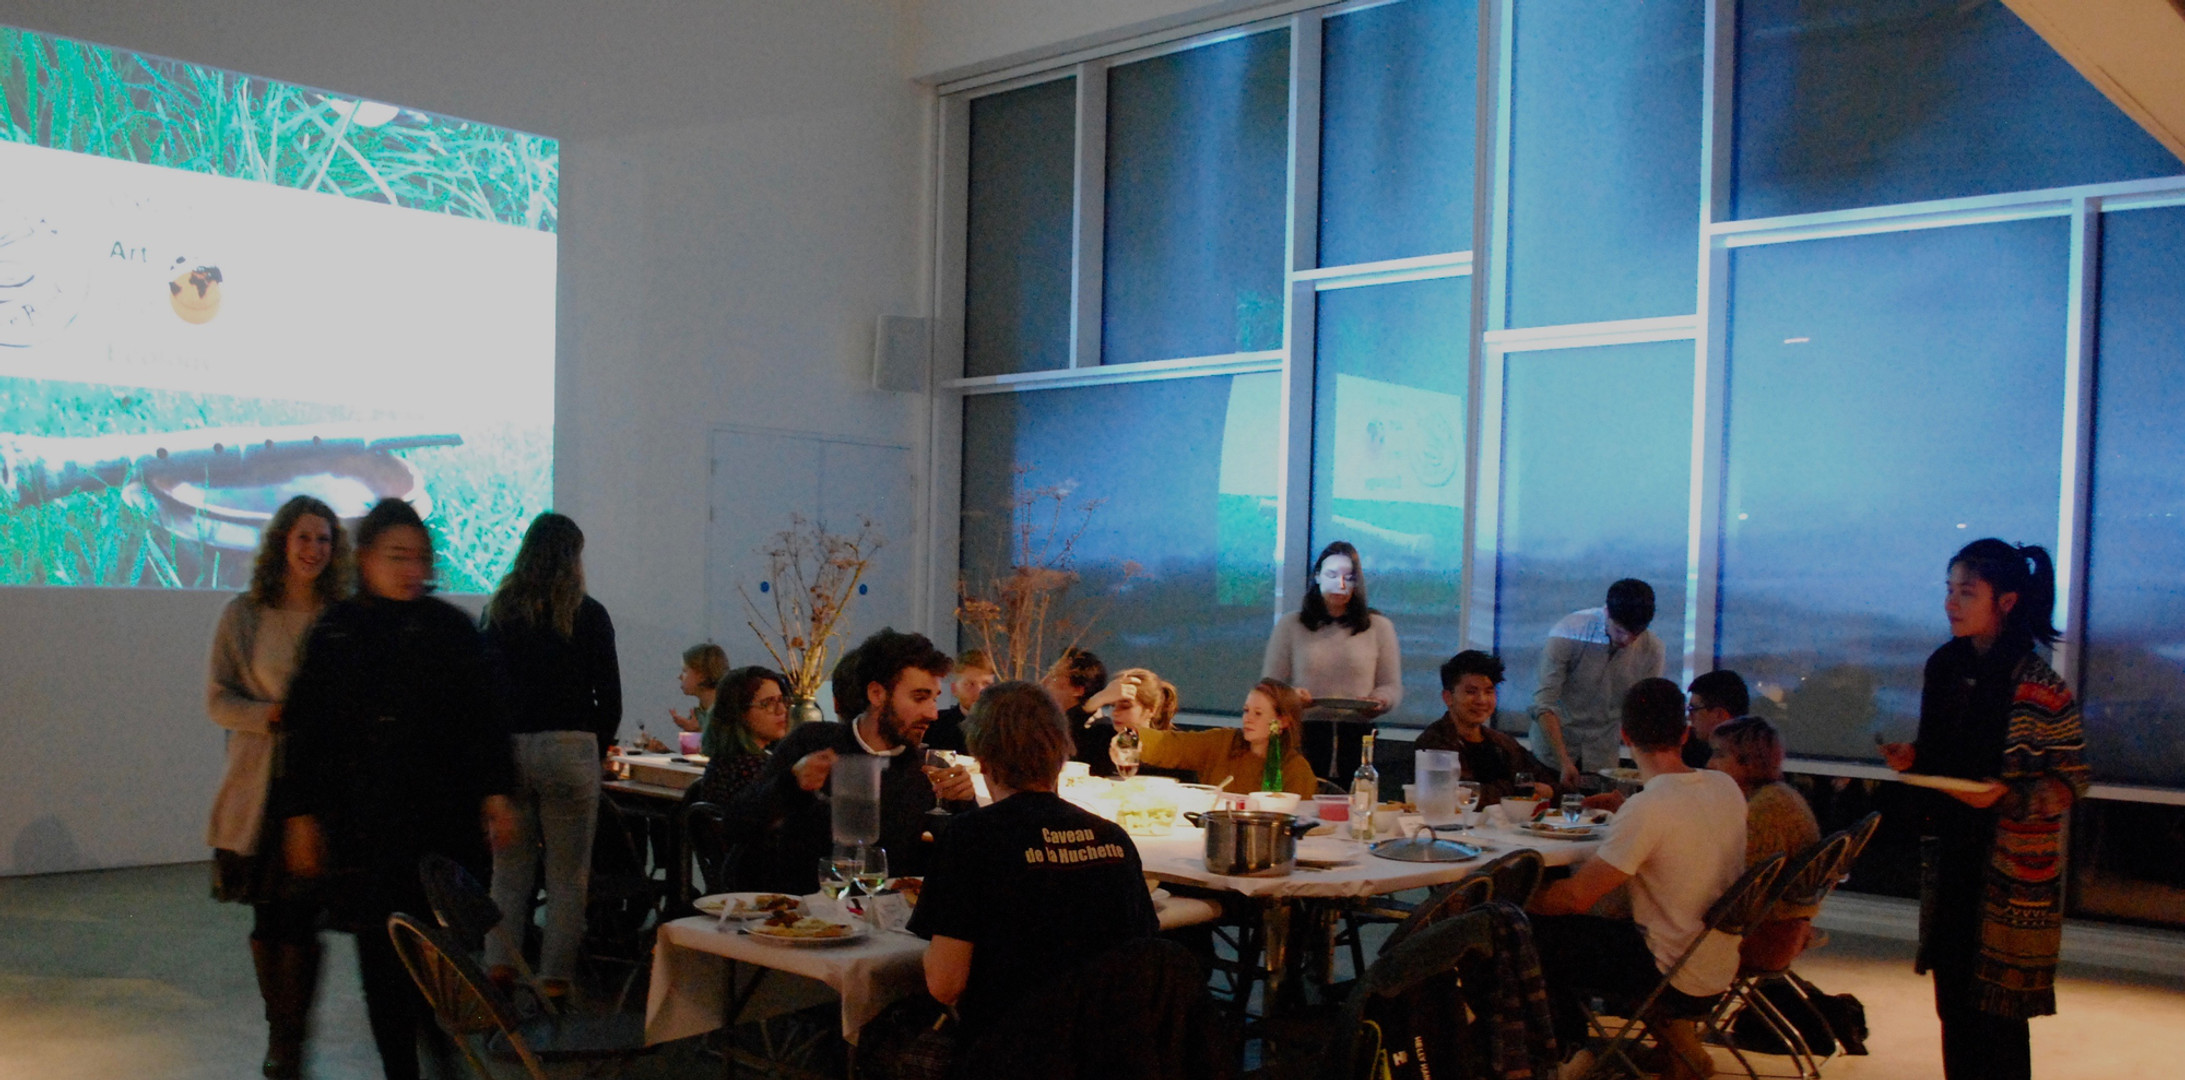 A good start to an important conversation: participants of the first workshop for Art  Climate Change initiative